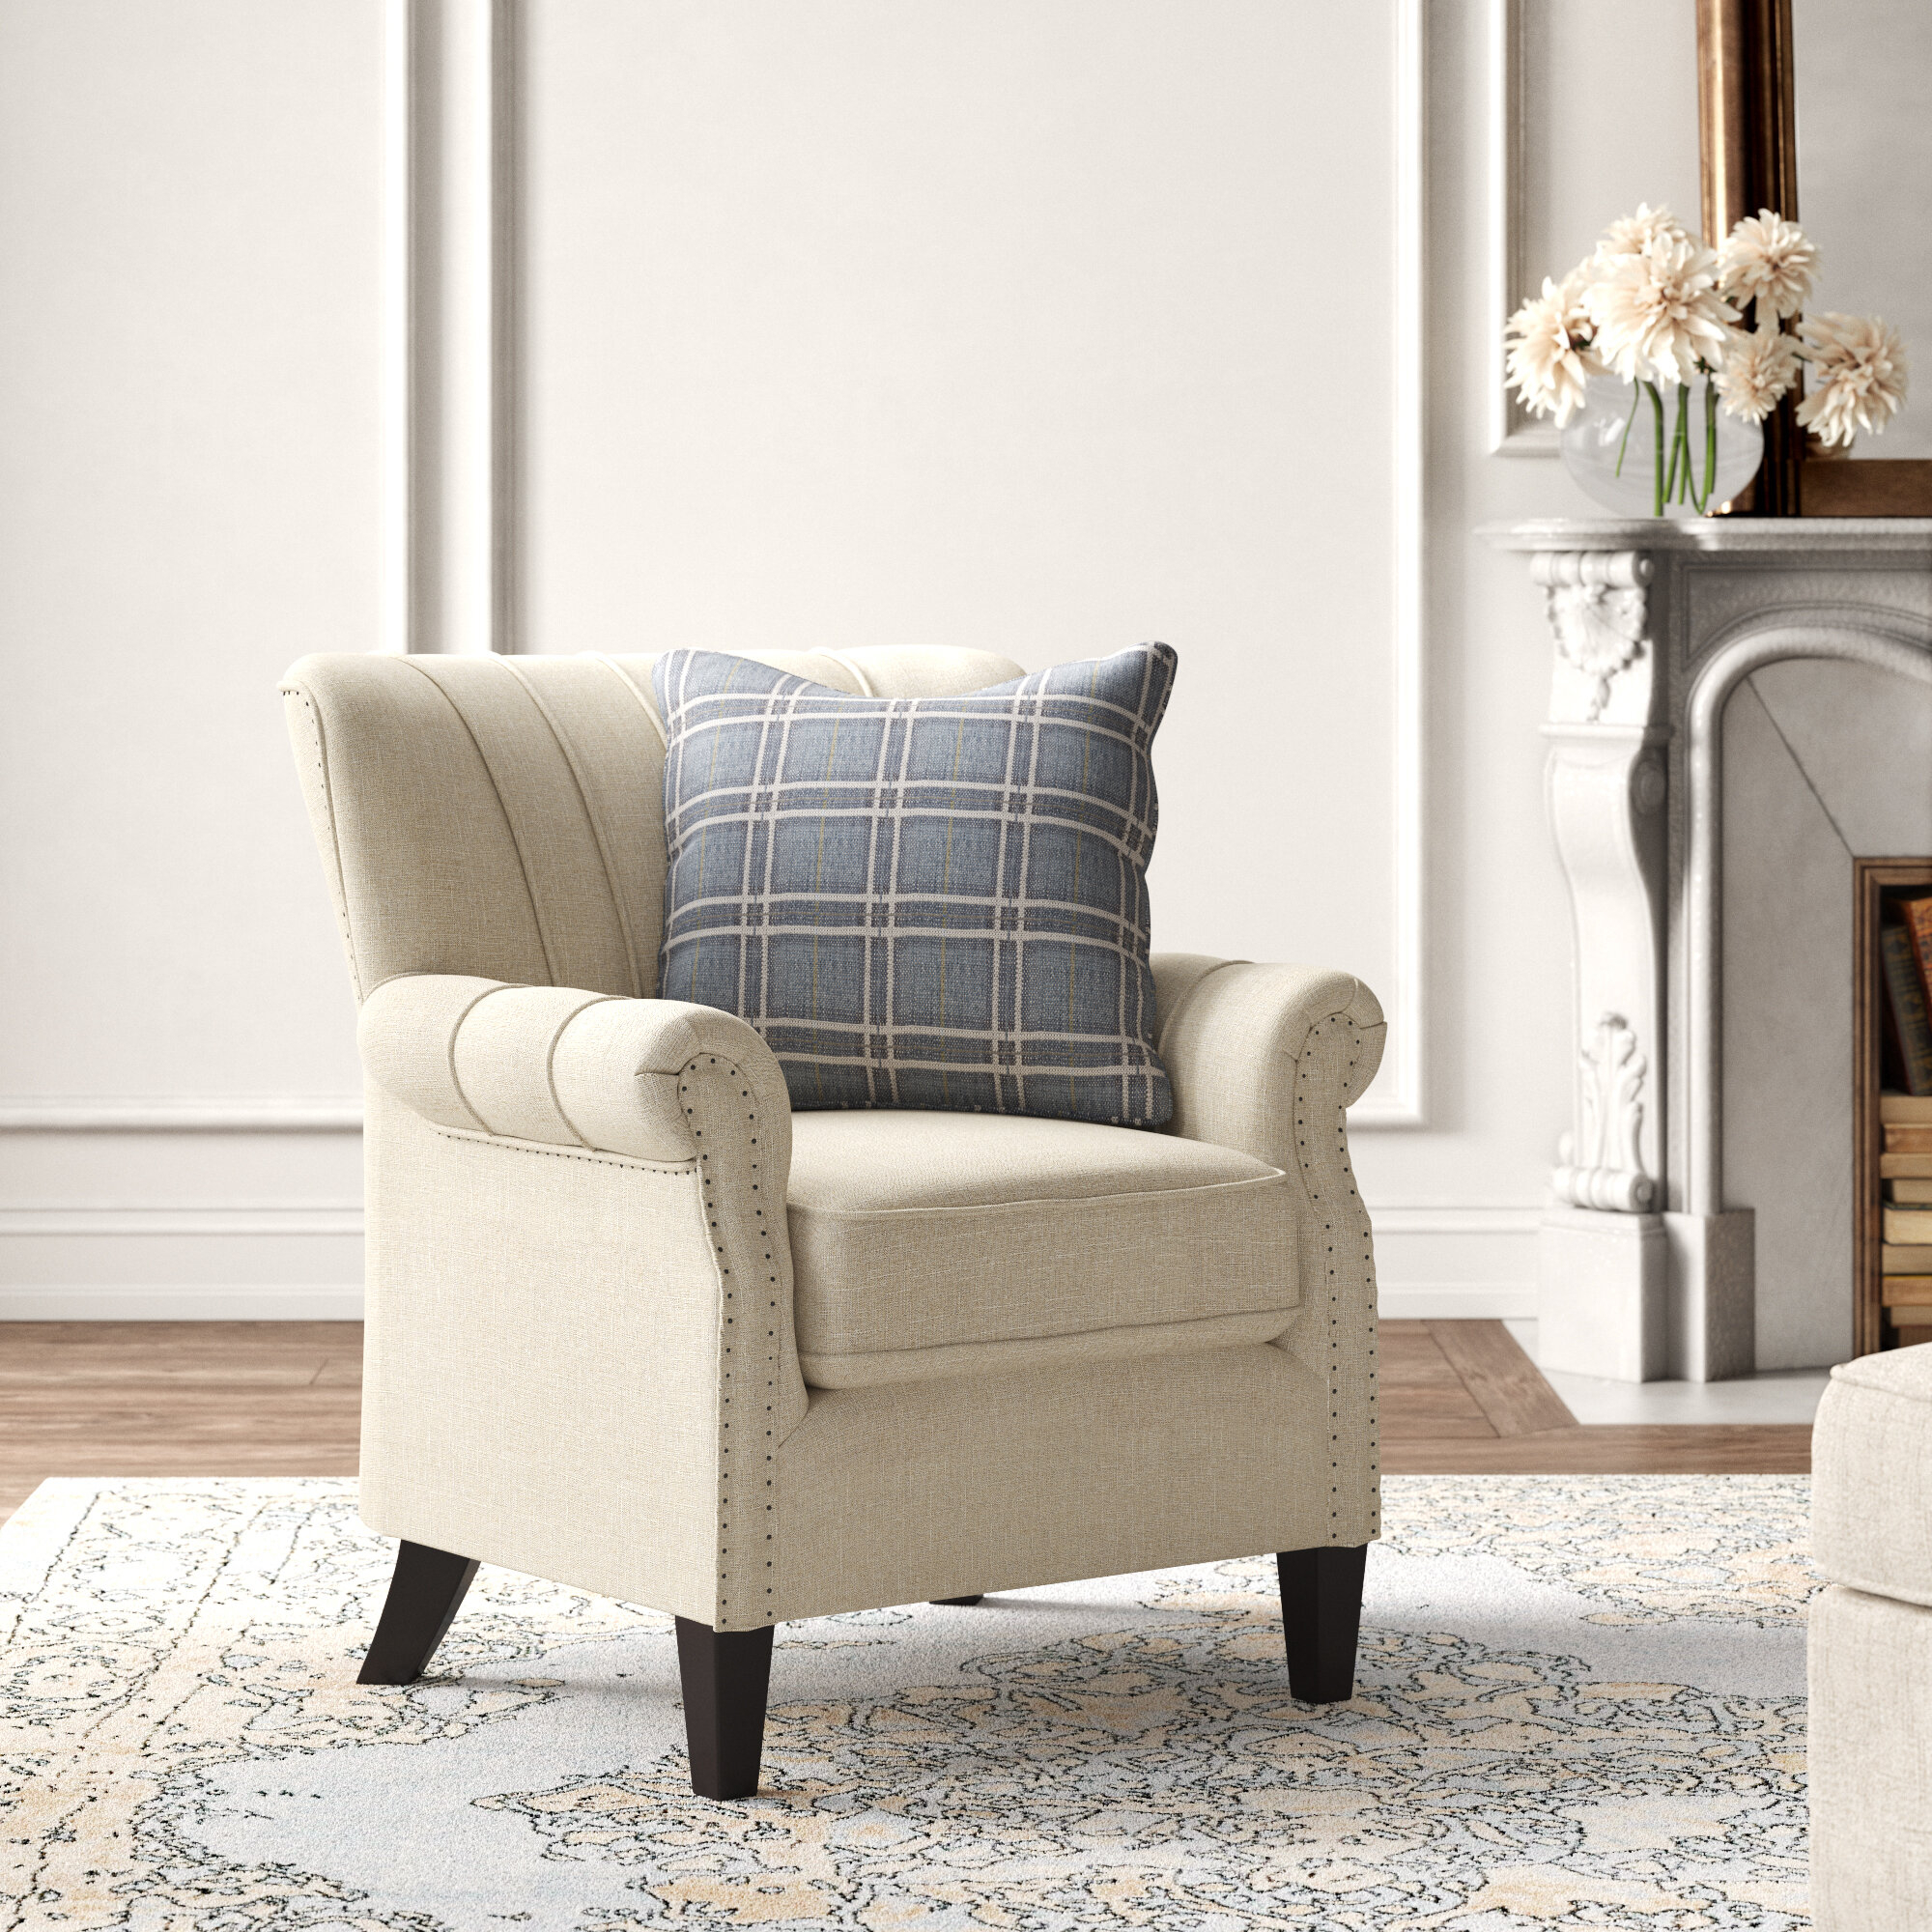 Armchairs | Wayfair With Ringwold Armchairs (View 6 of 15)